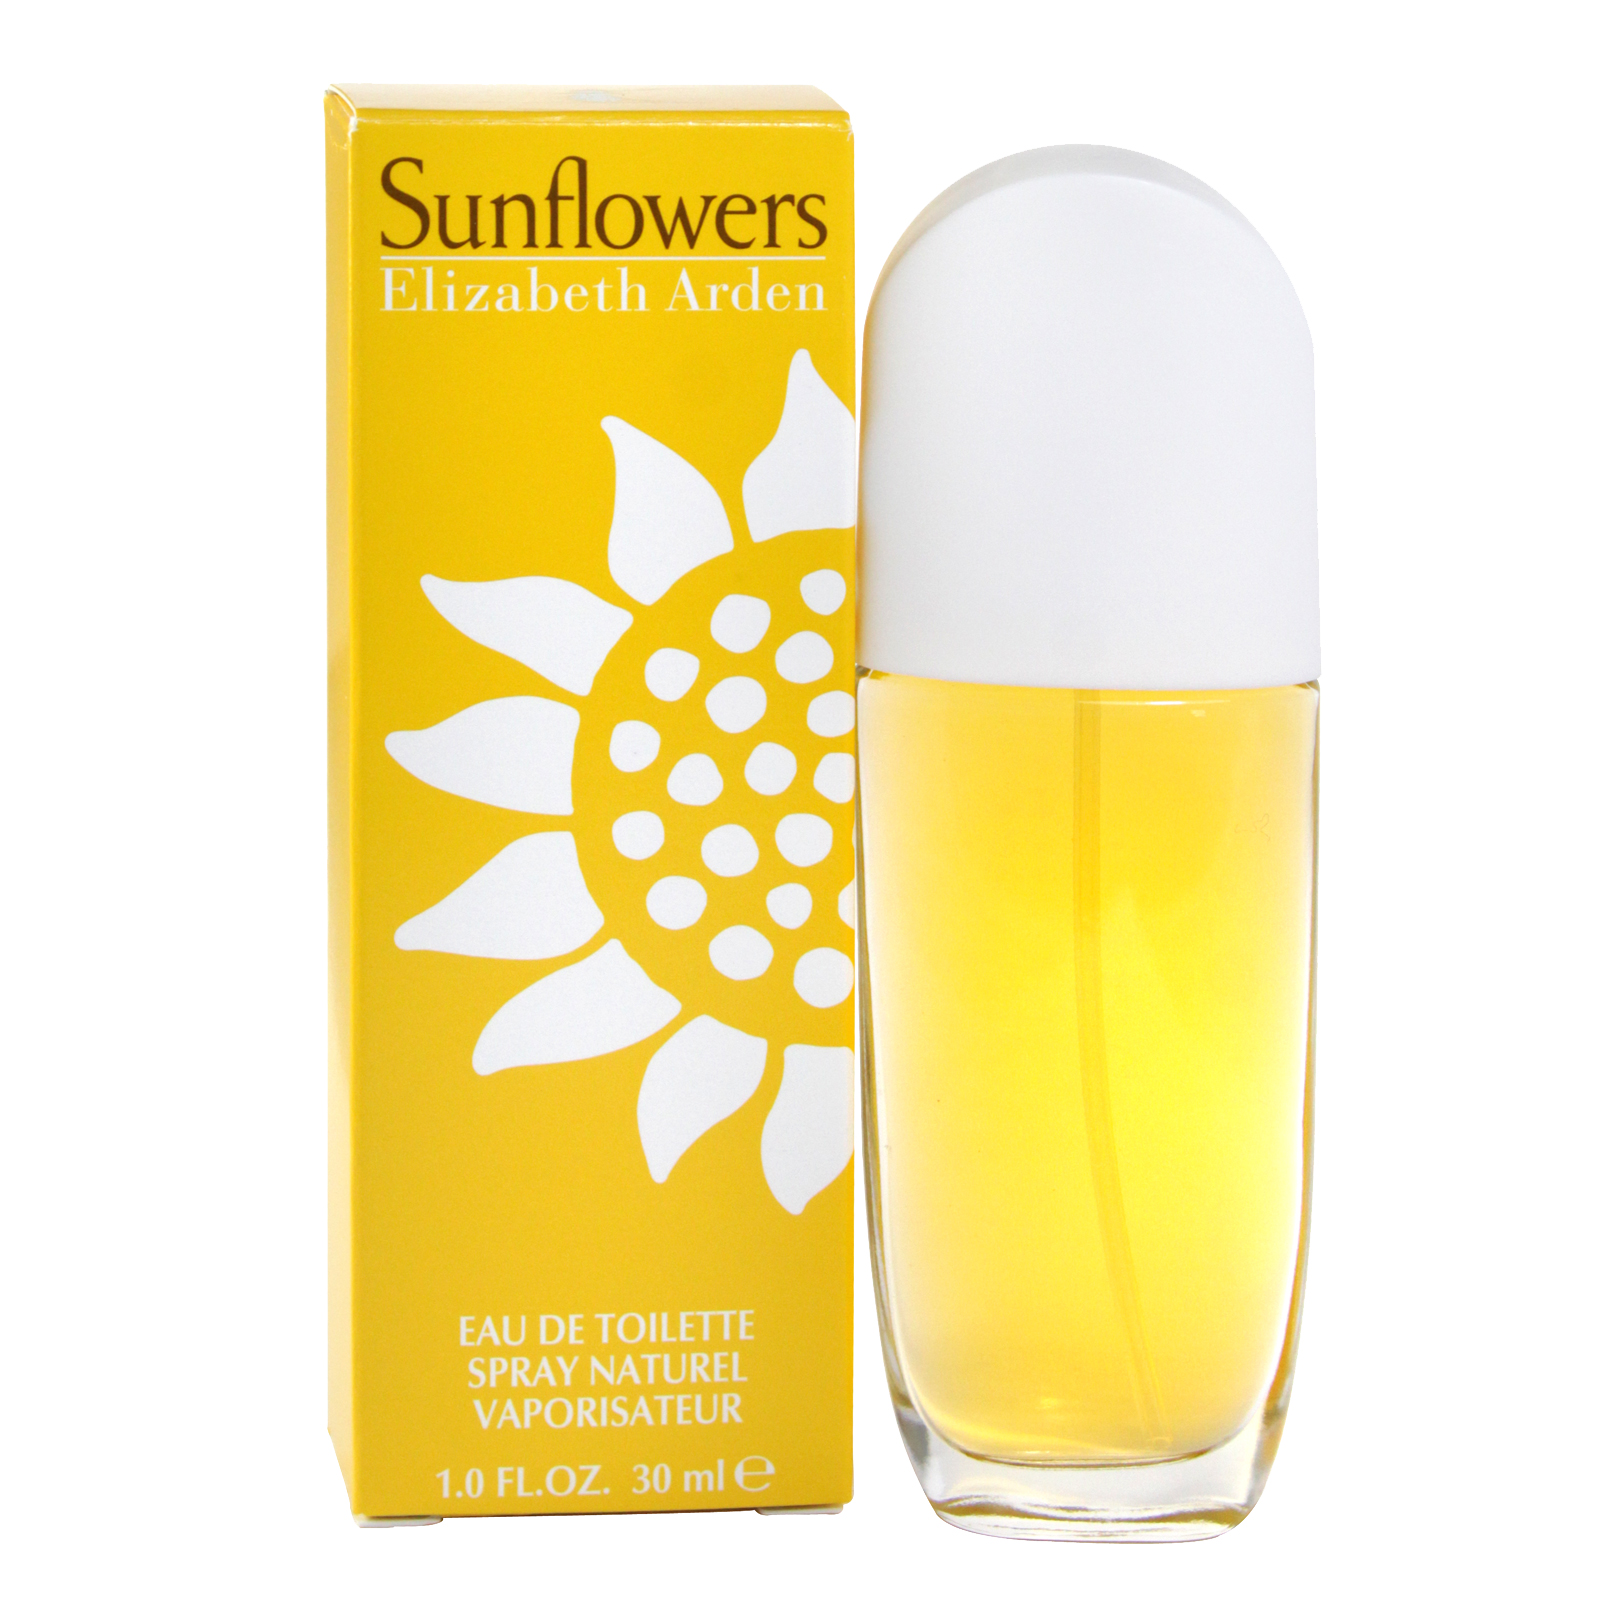 ELIZABETH ARDEN SUNFLOWERS 30ML EDT SPRAY